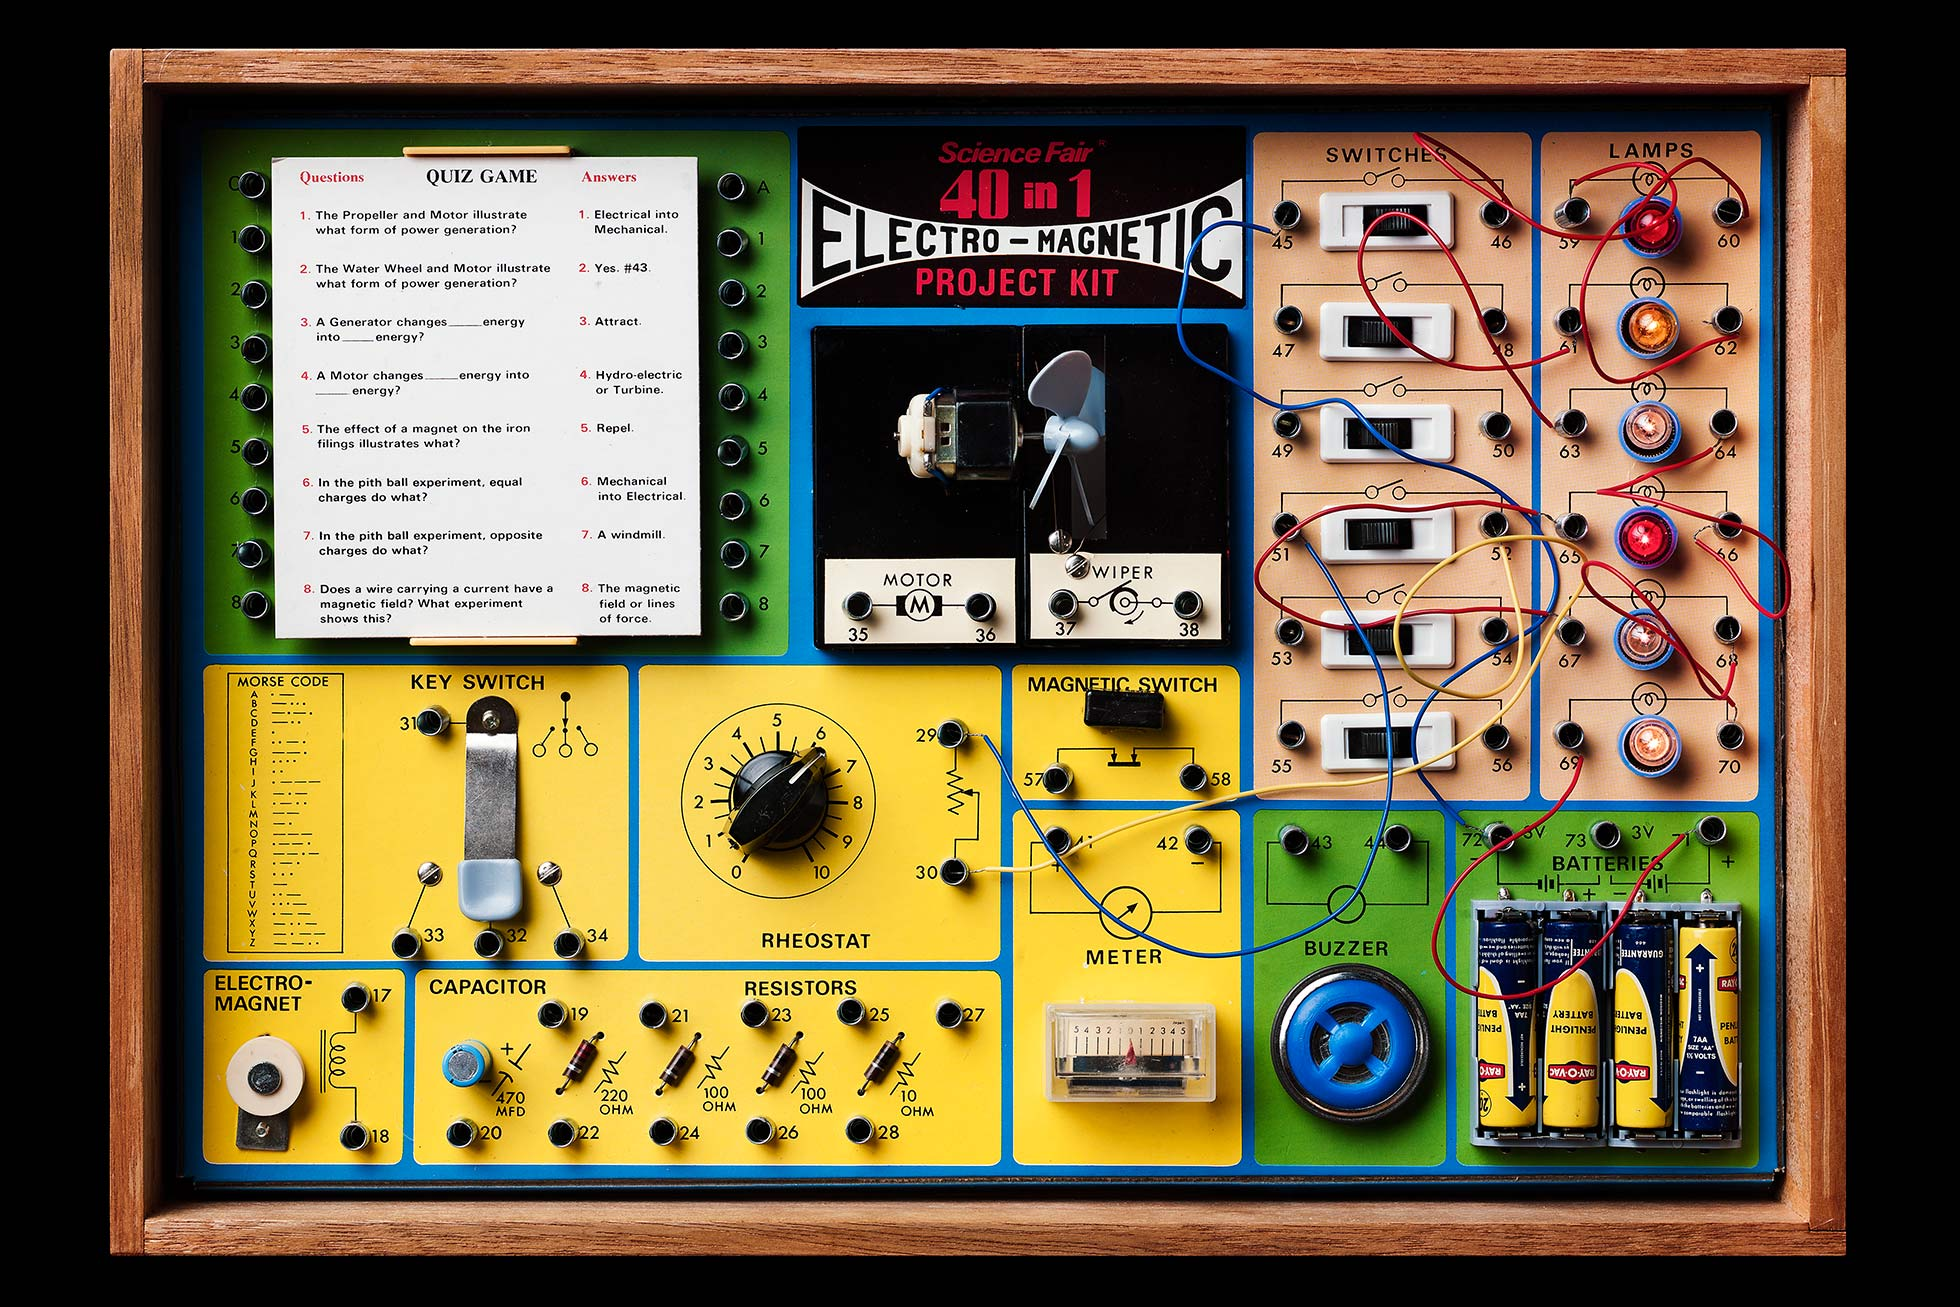 Vintage electronic kit 40 in 1